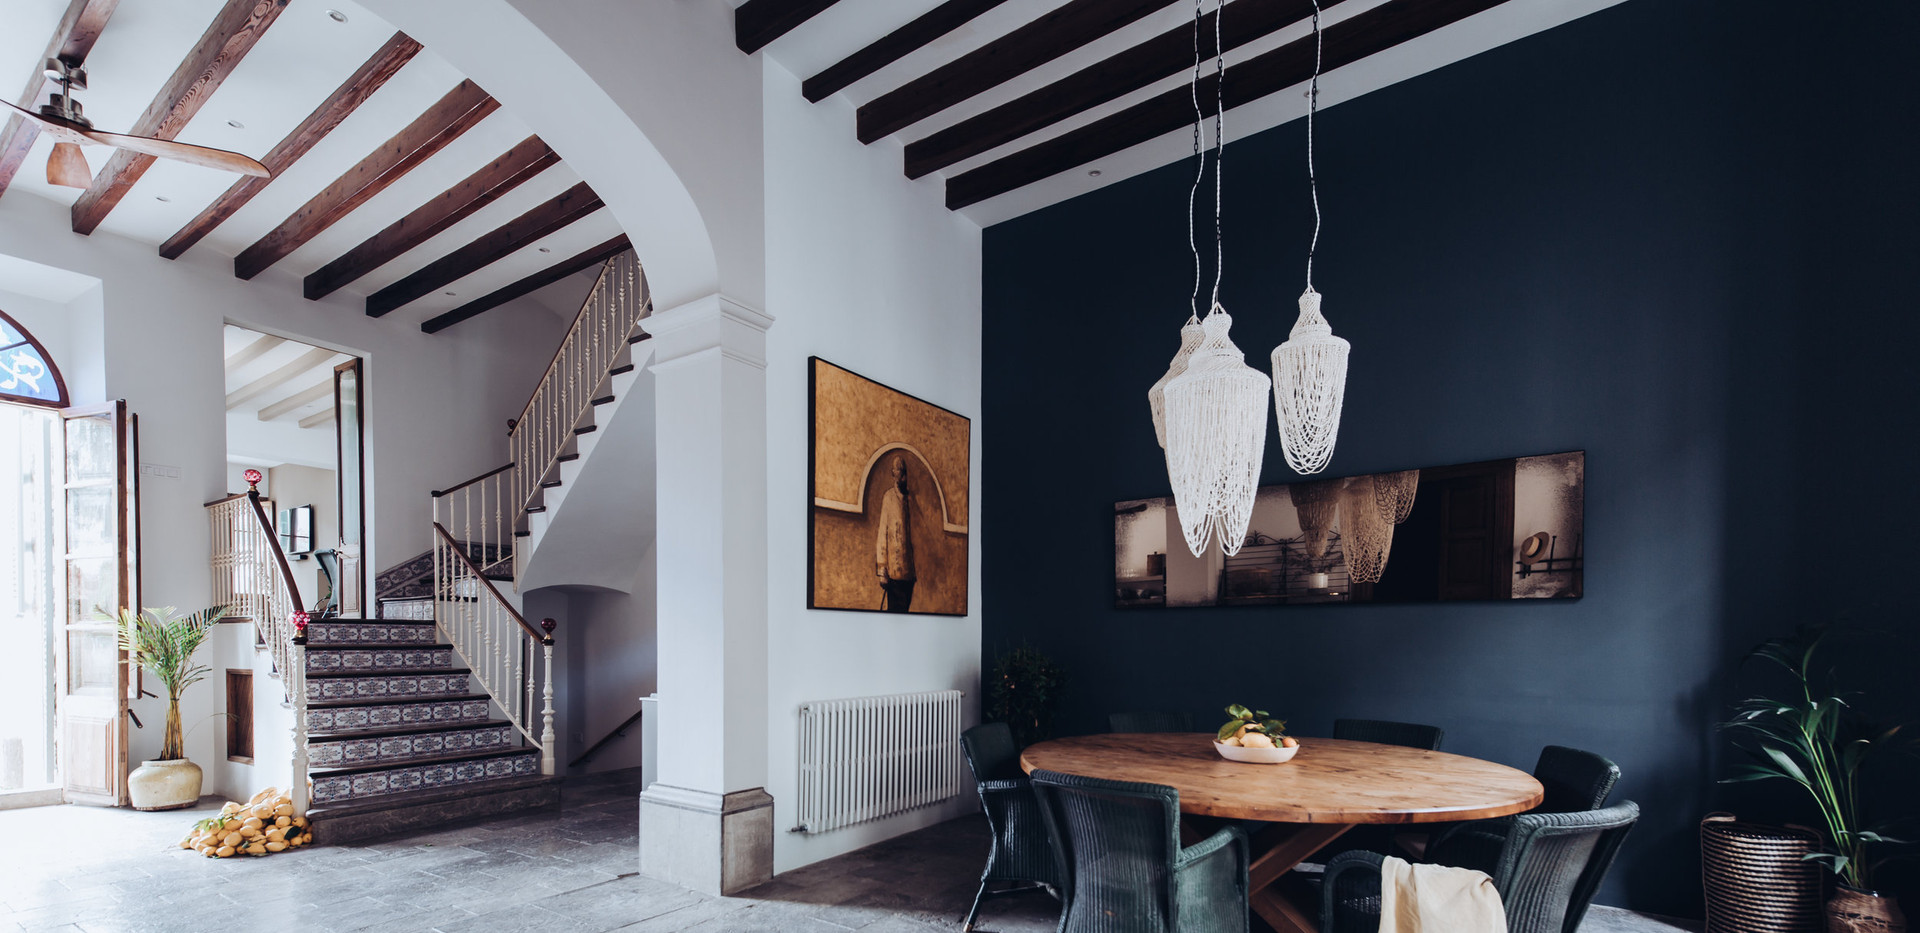 Soller Townhouse with many traditional features